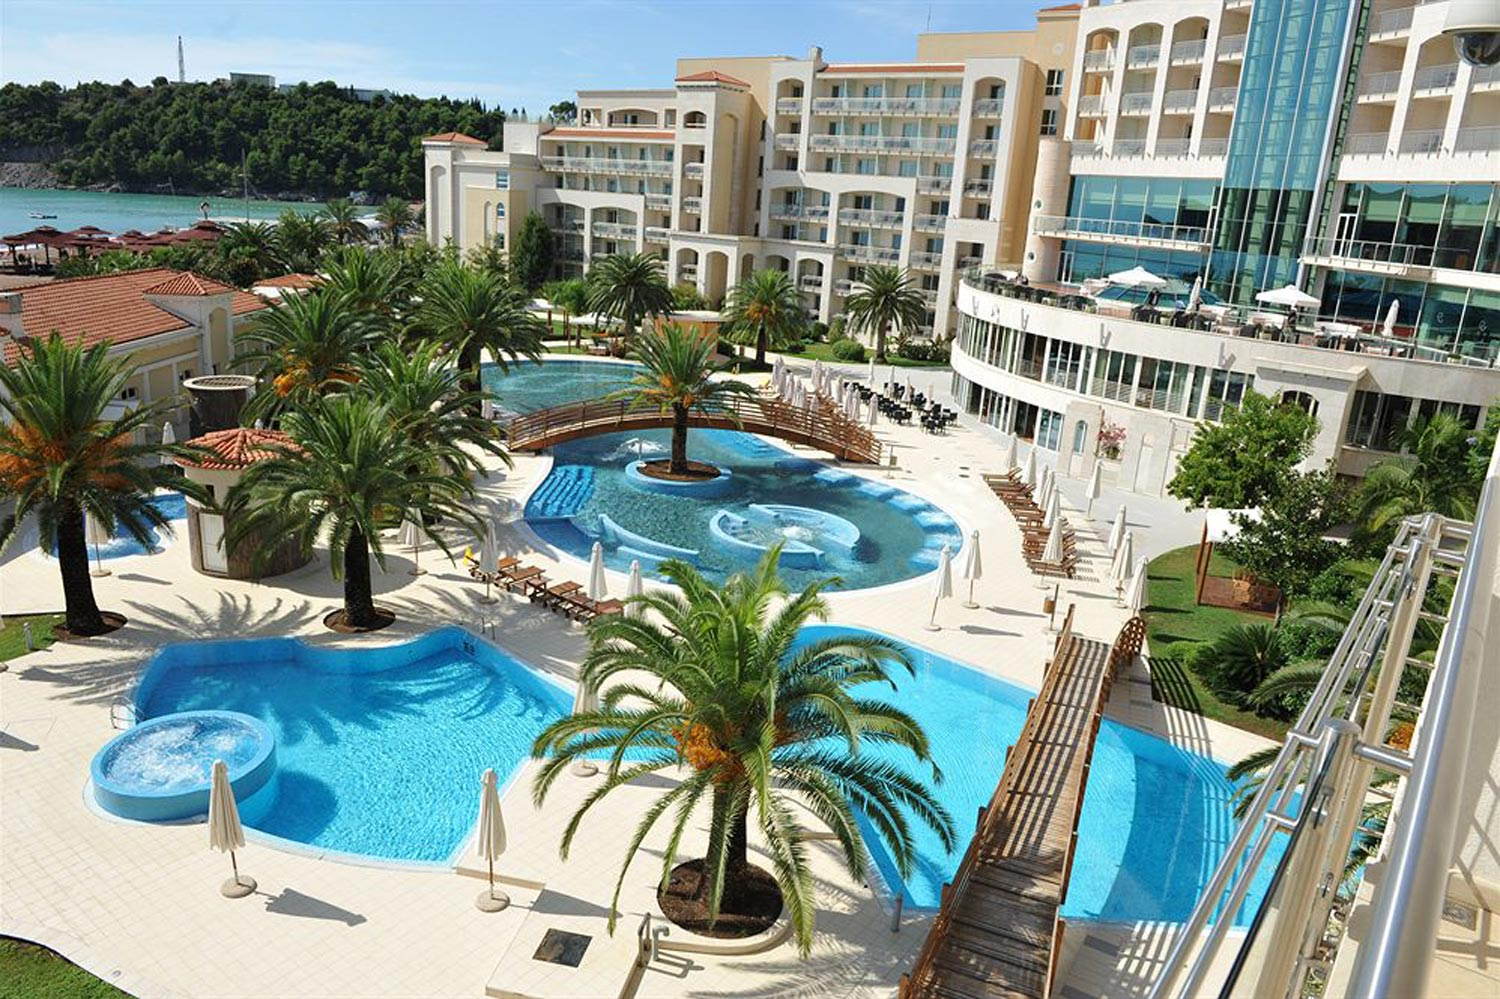 Hotel Splendid Conference and Spa Resort, Croatia-from £229 pp